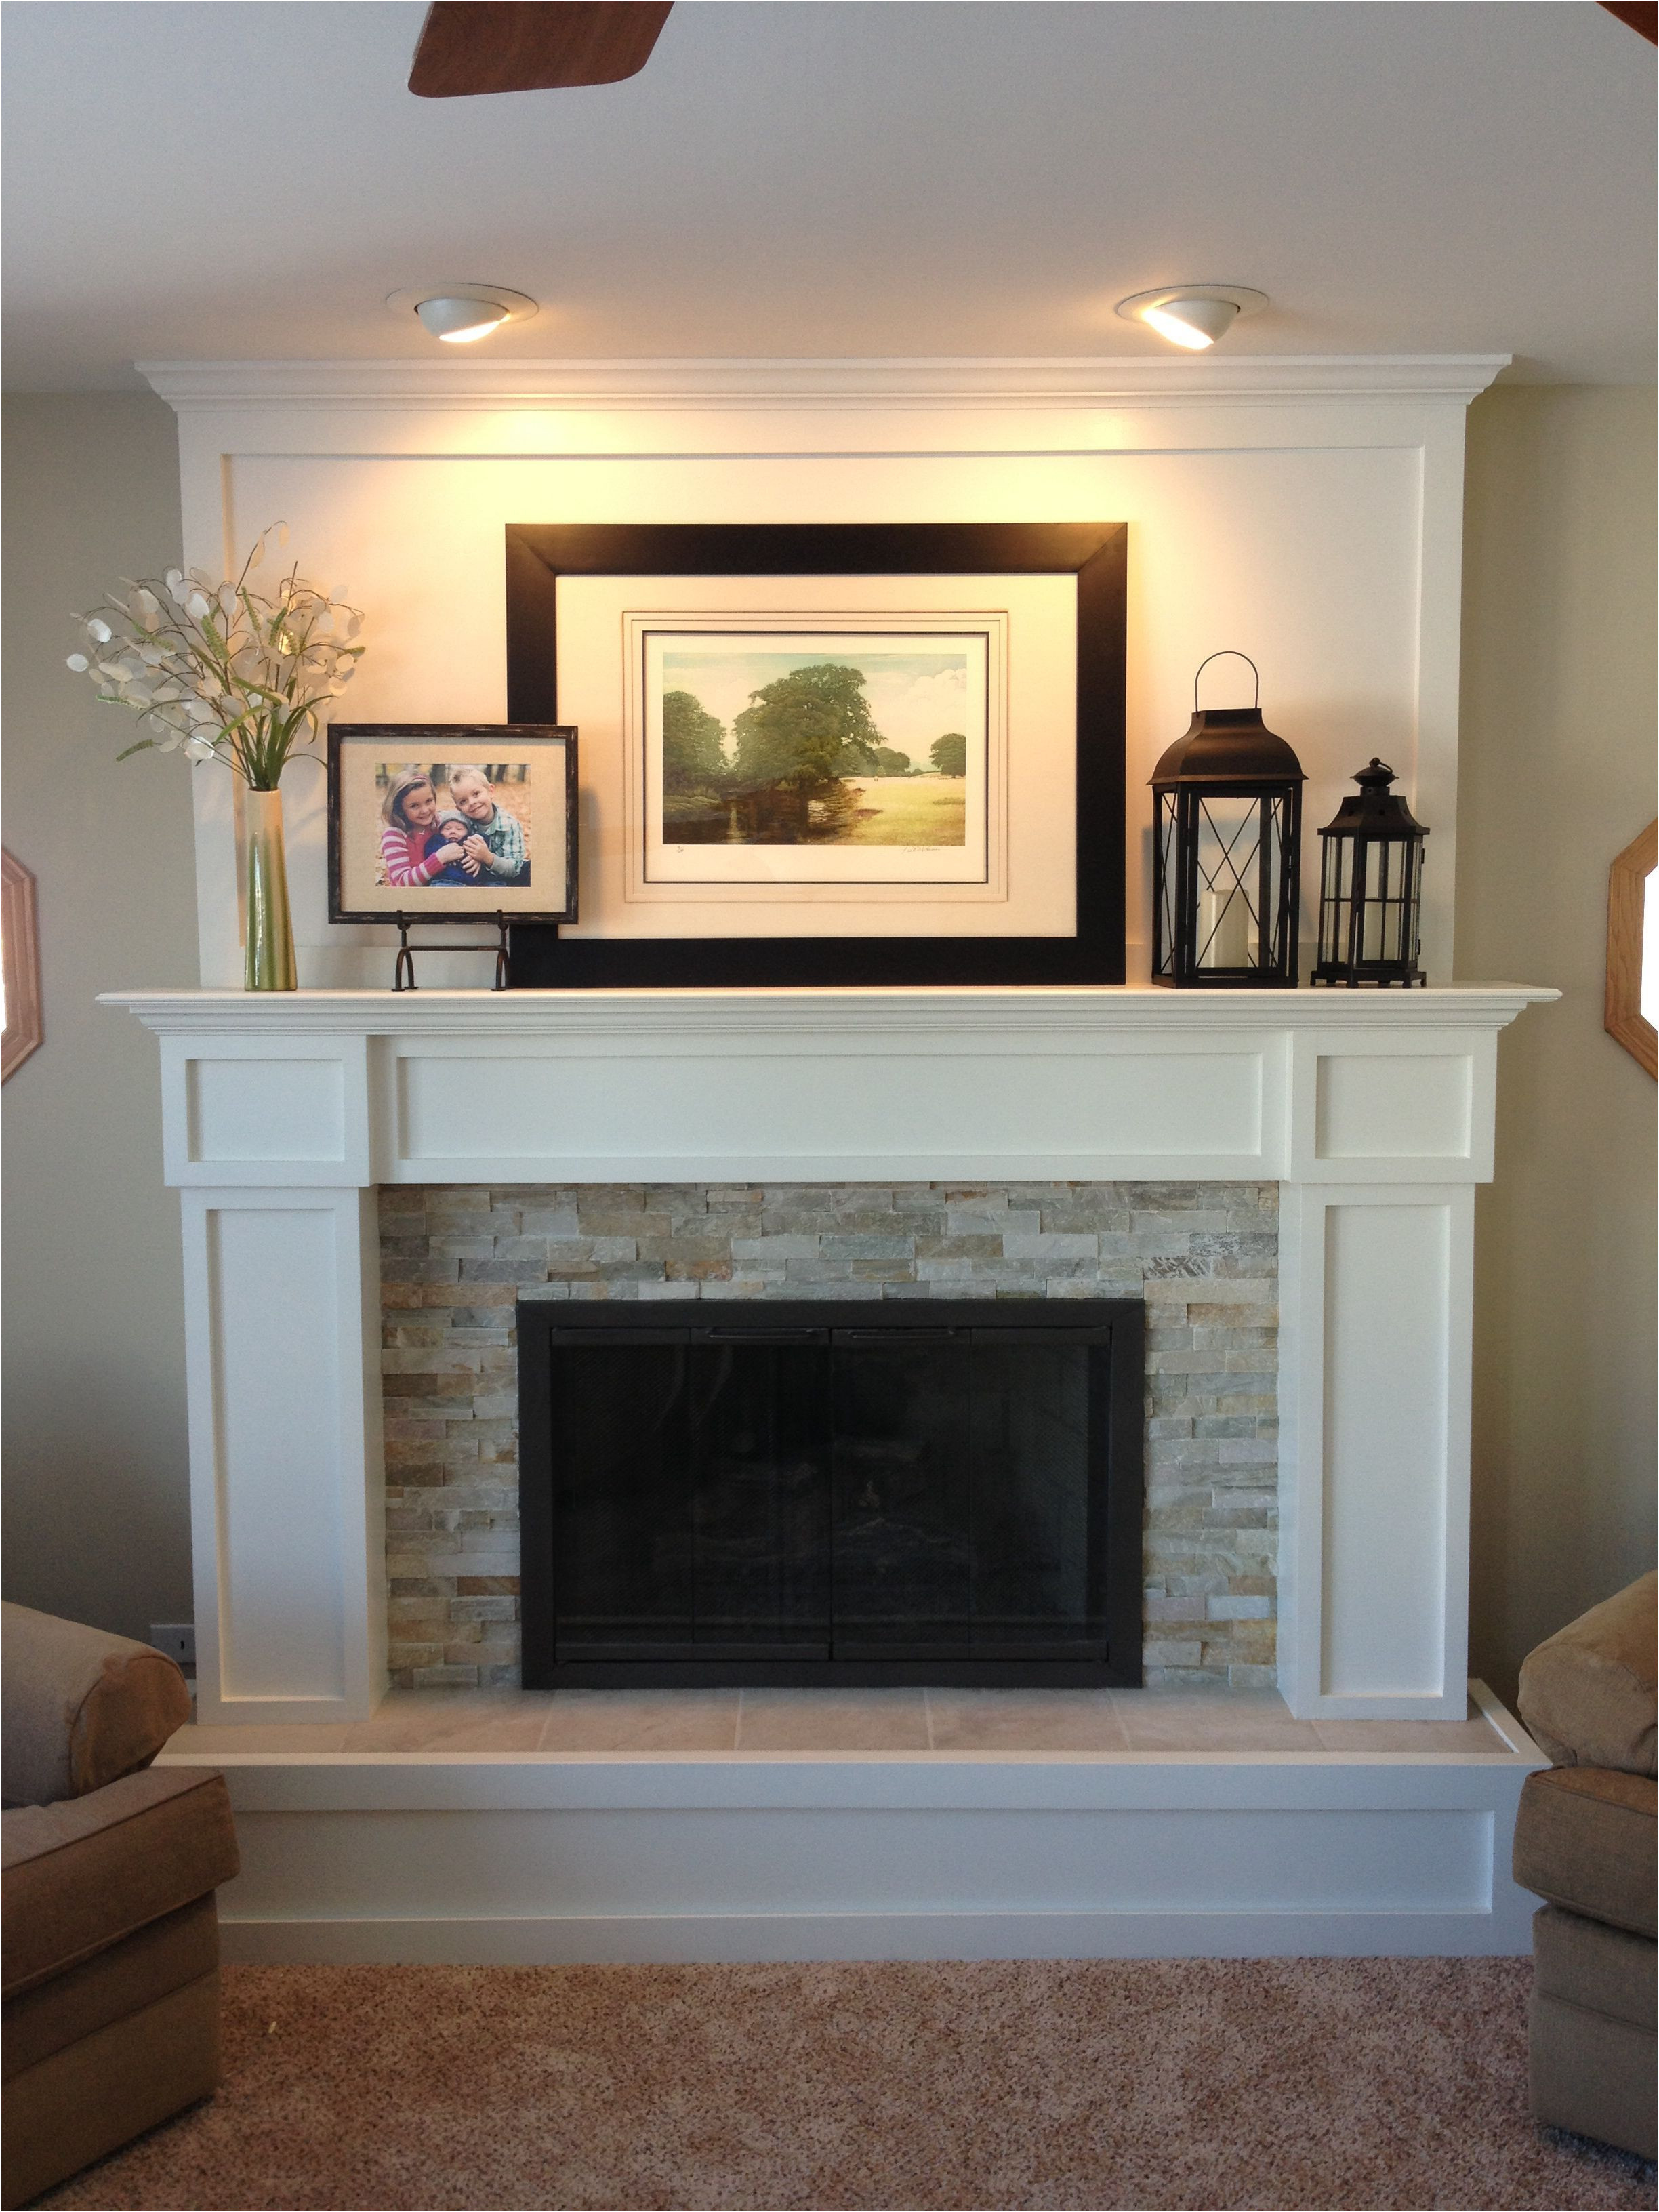 Awesome Fireplace with Mantel Ideas